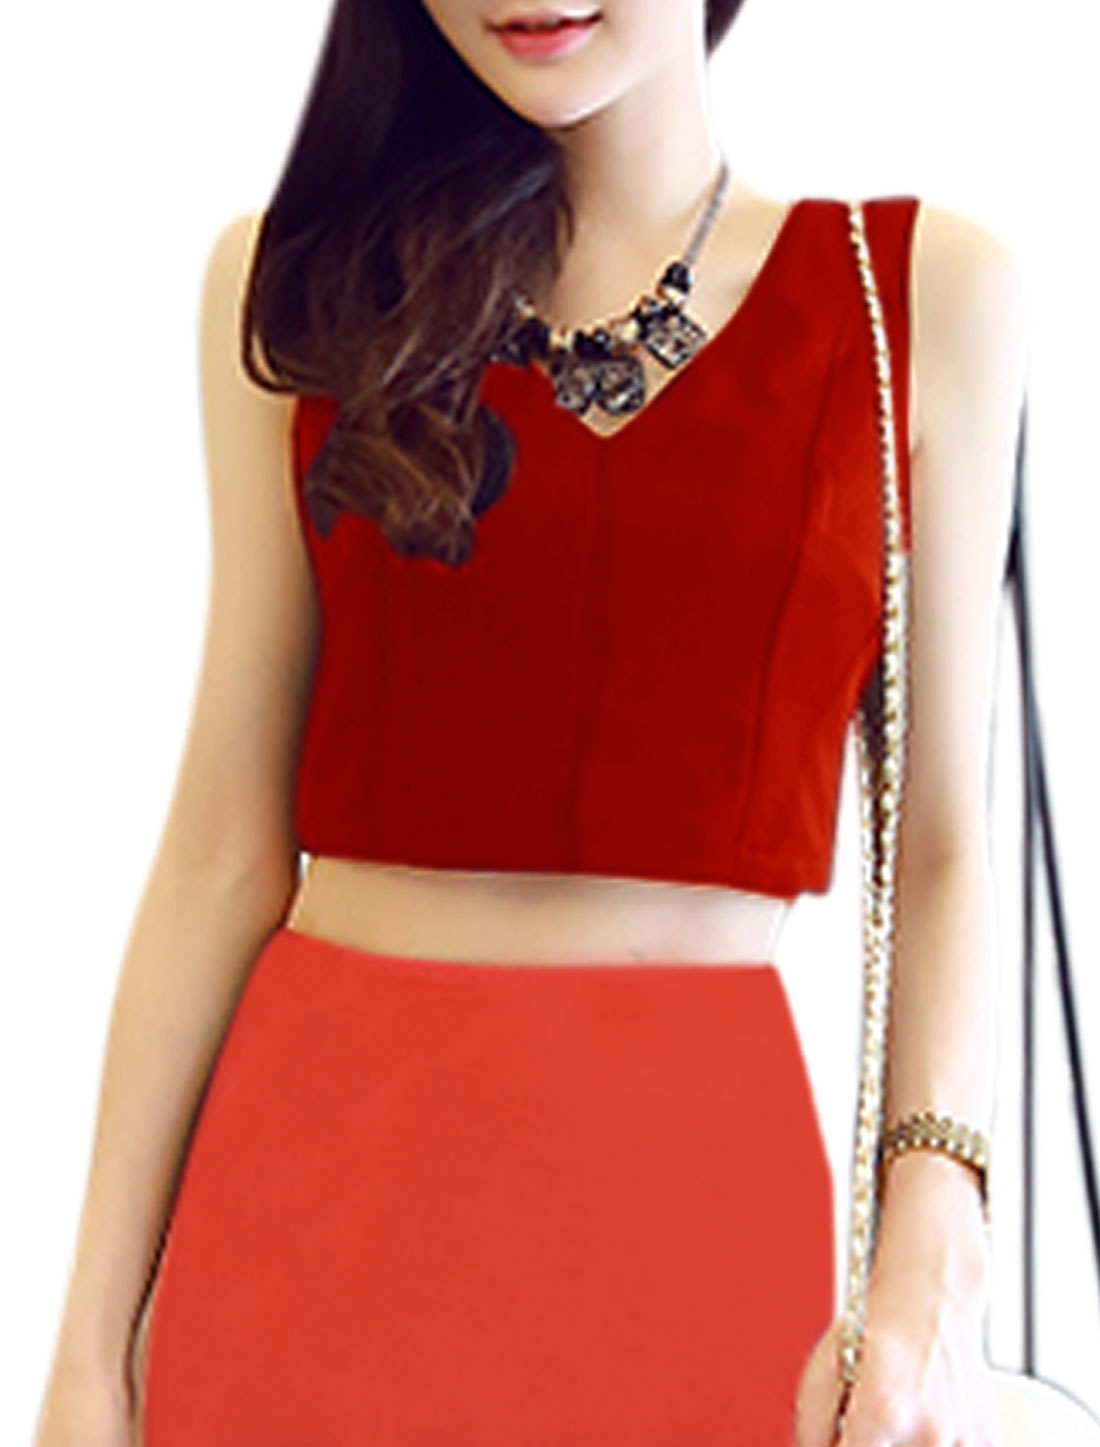 Woman V Neck Sleeveless Exposed Zip Closure Back Casual Crop Top Red M